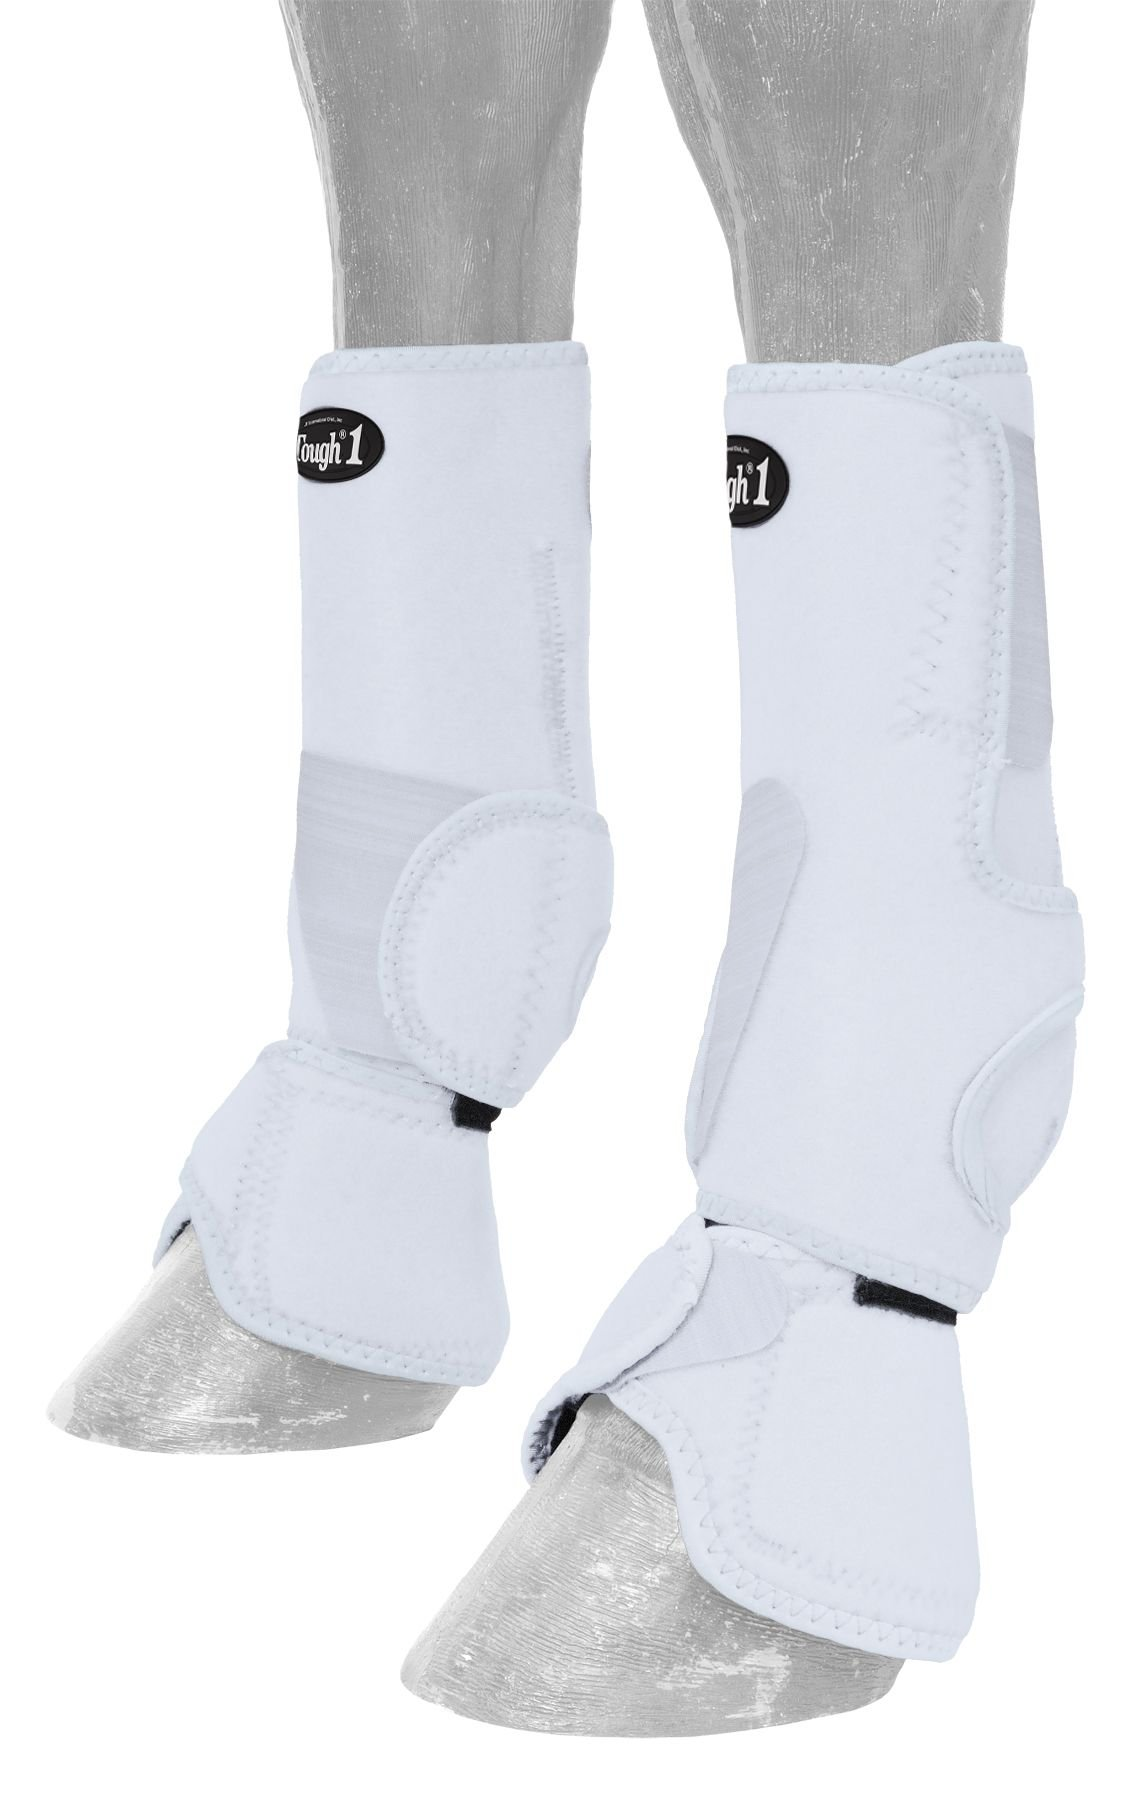 Tough 1 Performers 1st Choice Combo Boots, White, Medium